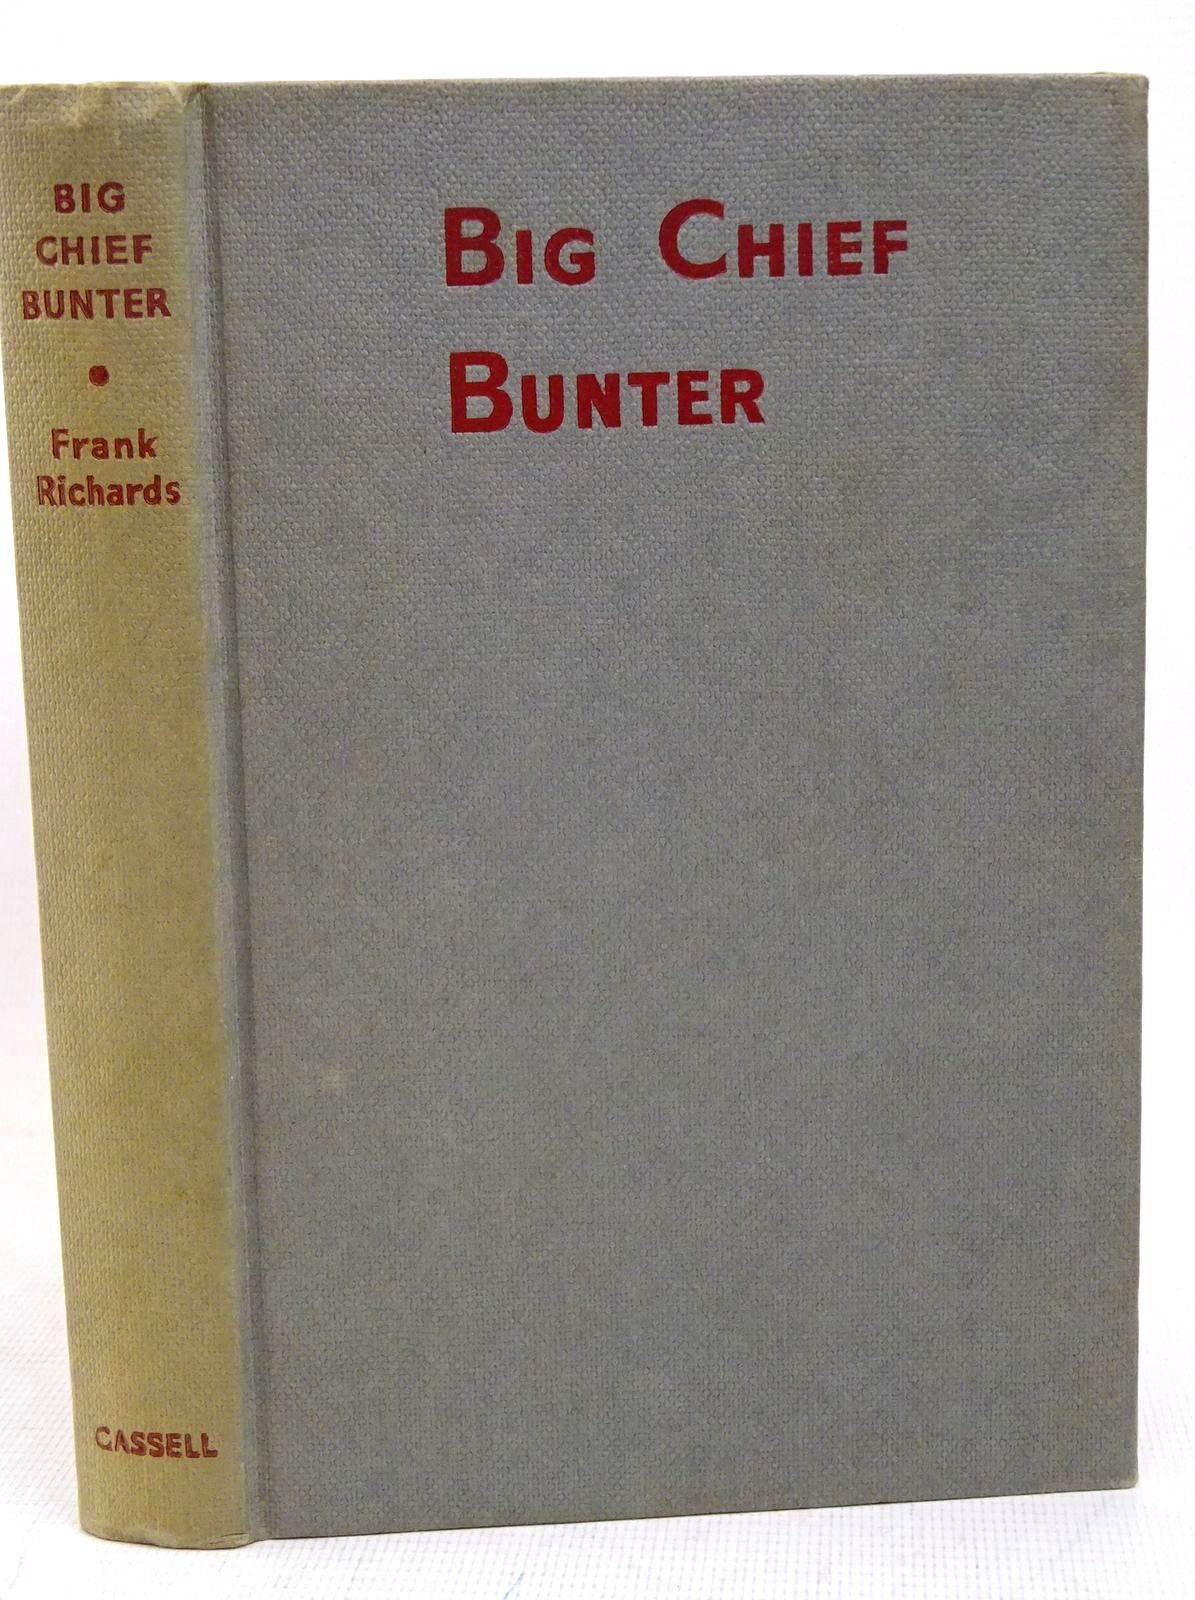 Photo of BIG CHIEF BUNTER written by Richards, Frank illustrated by Chapman, C.H. published by Cassell & Co. Ltd. (STOCK CODE: 1317681)  for sale by Stella & Rose's Books